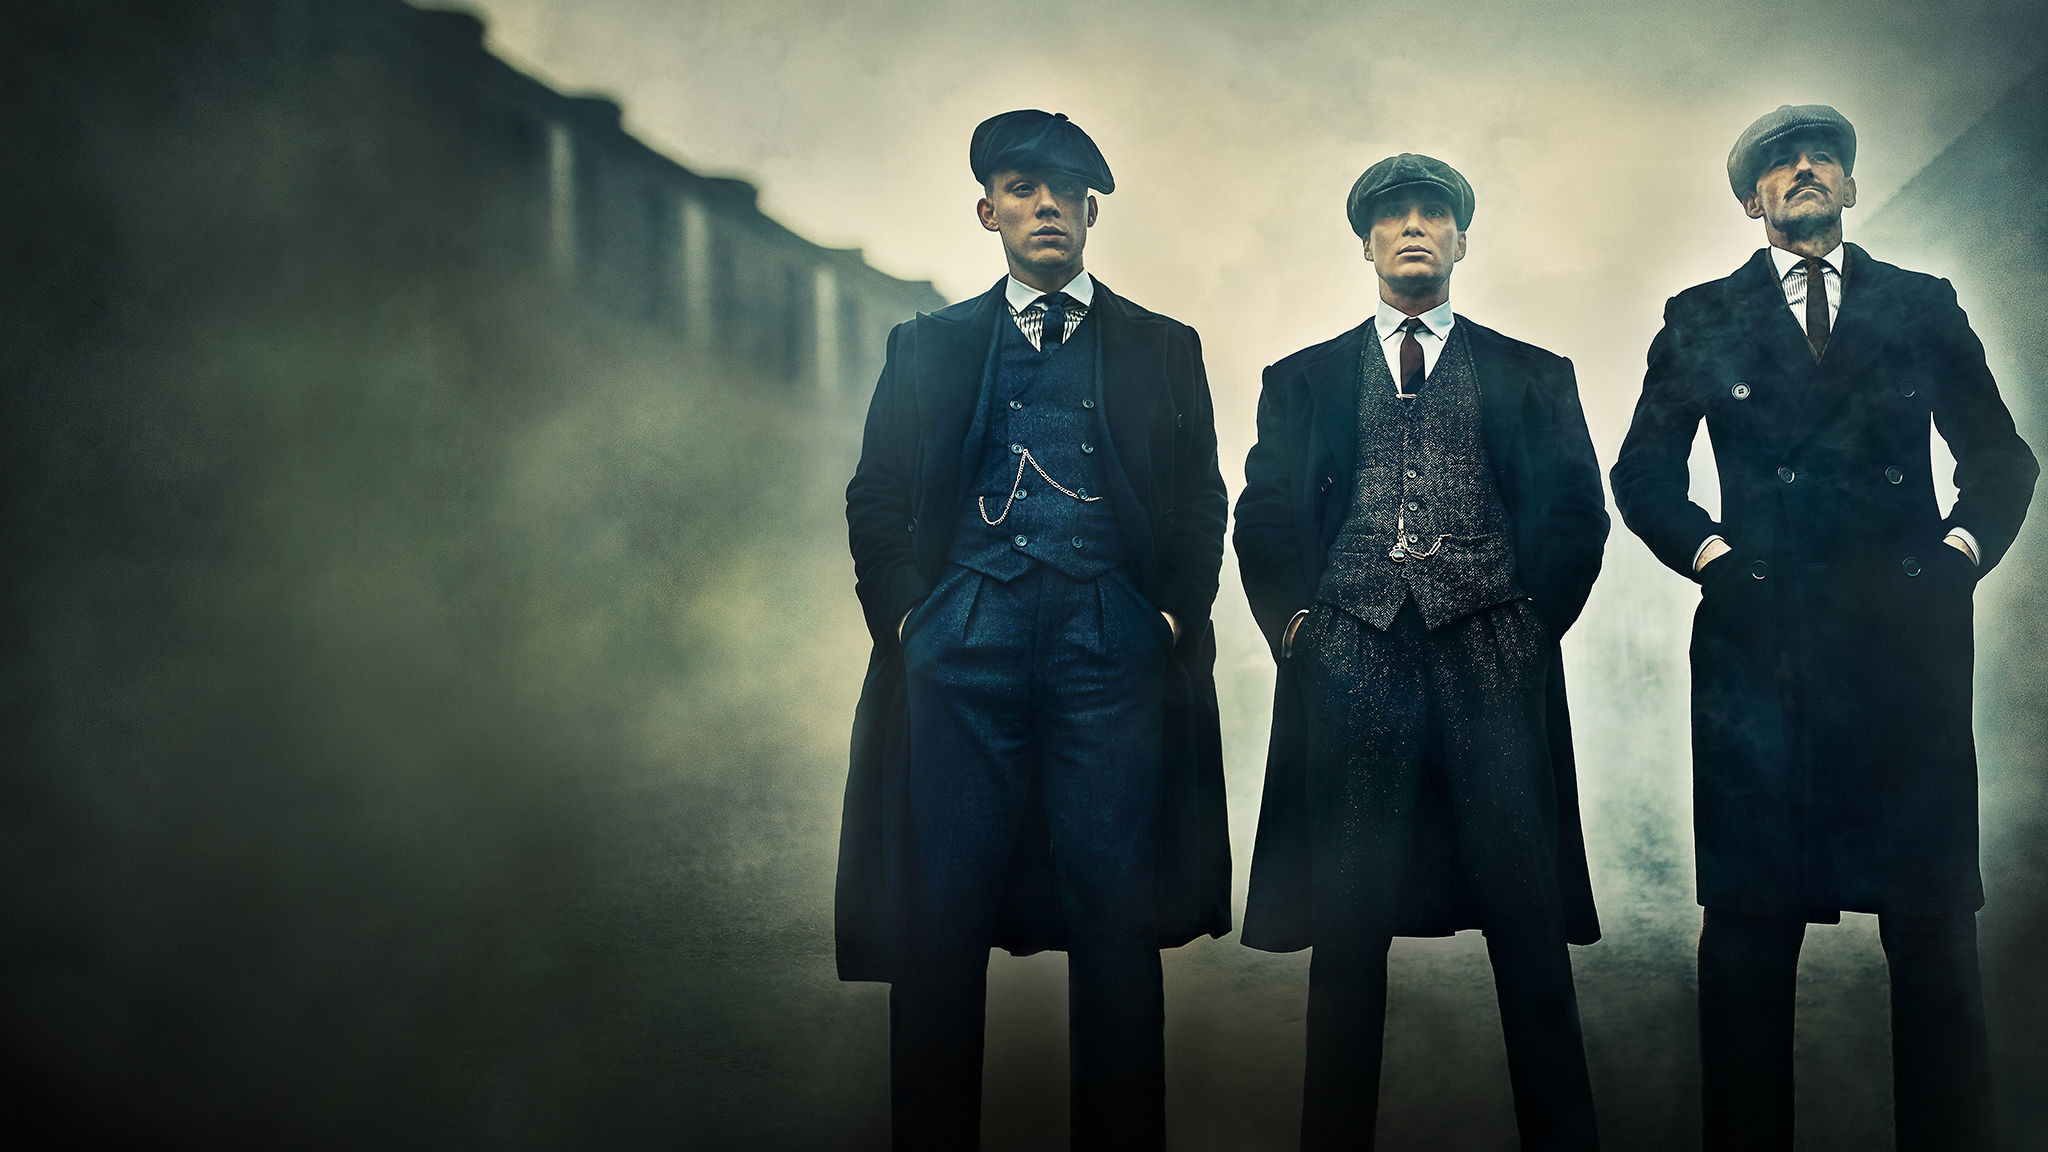 Quotes Iphone Wallpaper Hd Peaky Blinders Wallpapers 76 Images